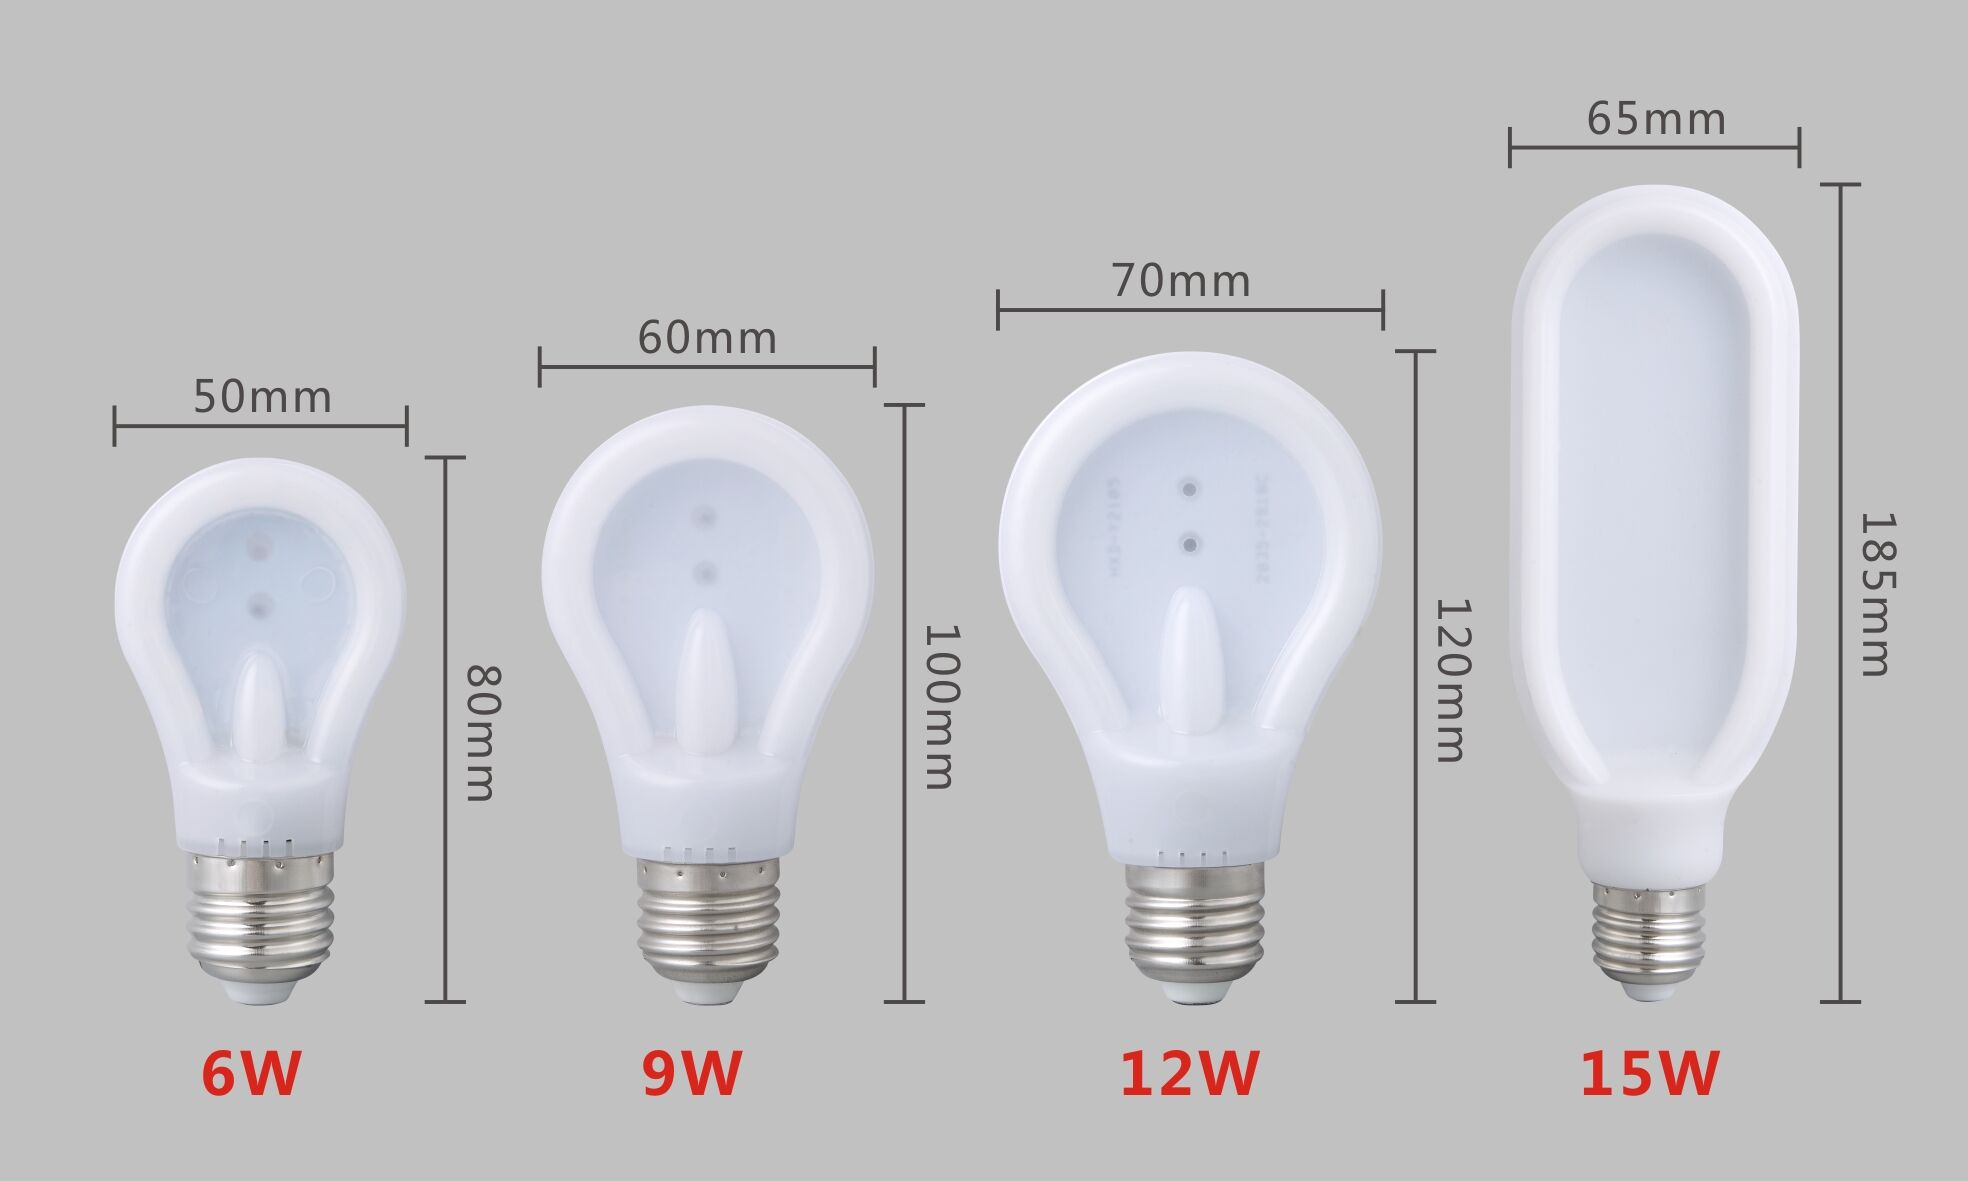 100-265V 6w 9w 12w 18w LED slim light, 360°lighting around, passed CE and RoHs certification